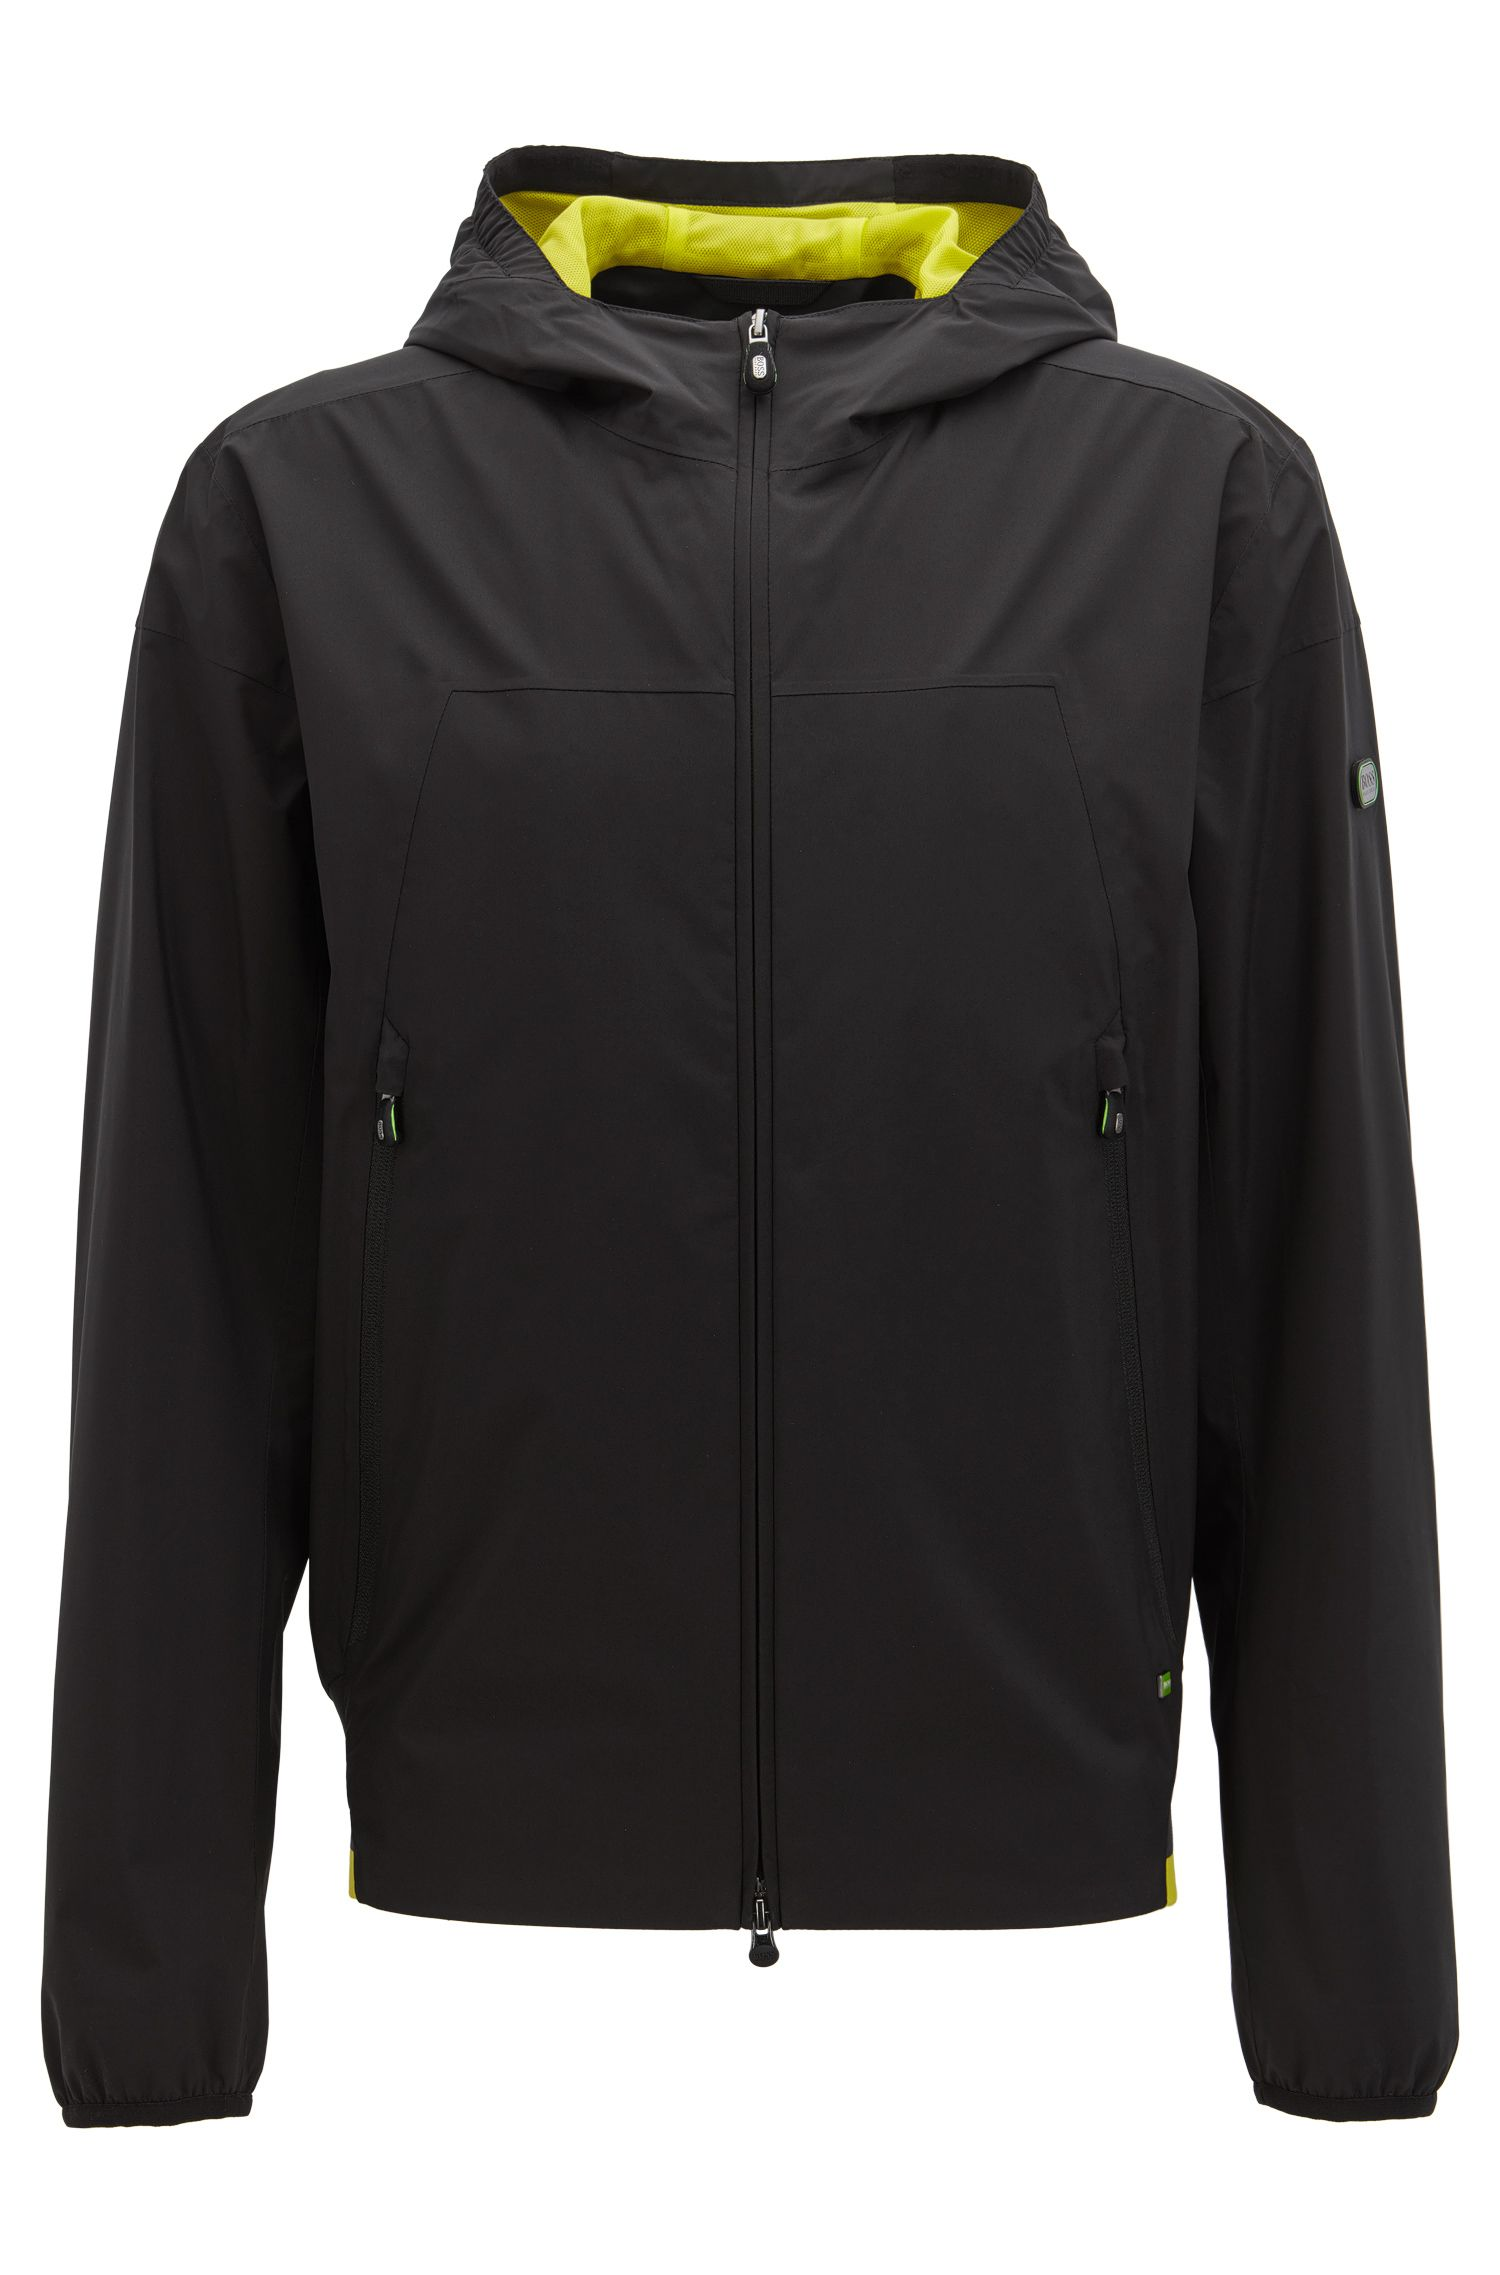 Waterproof jacket in soft-touch technical fabric